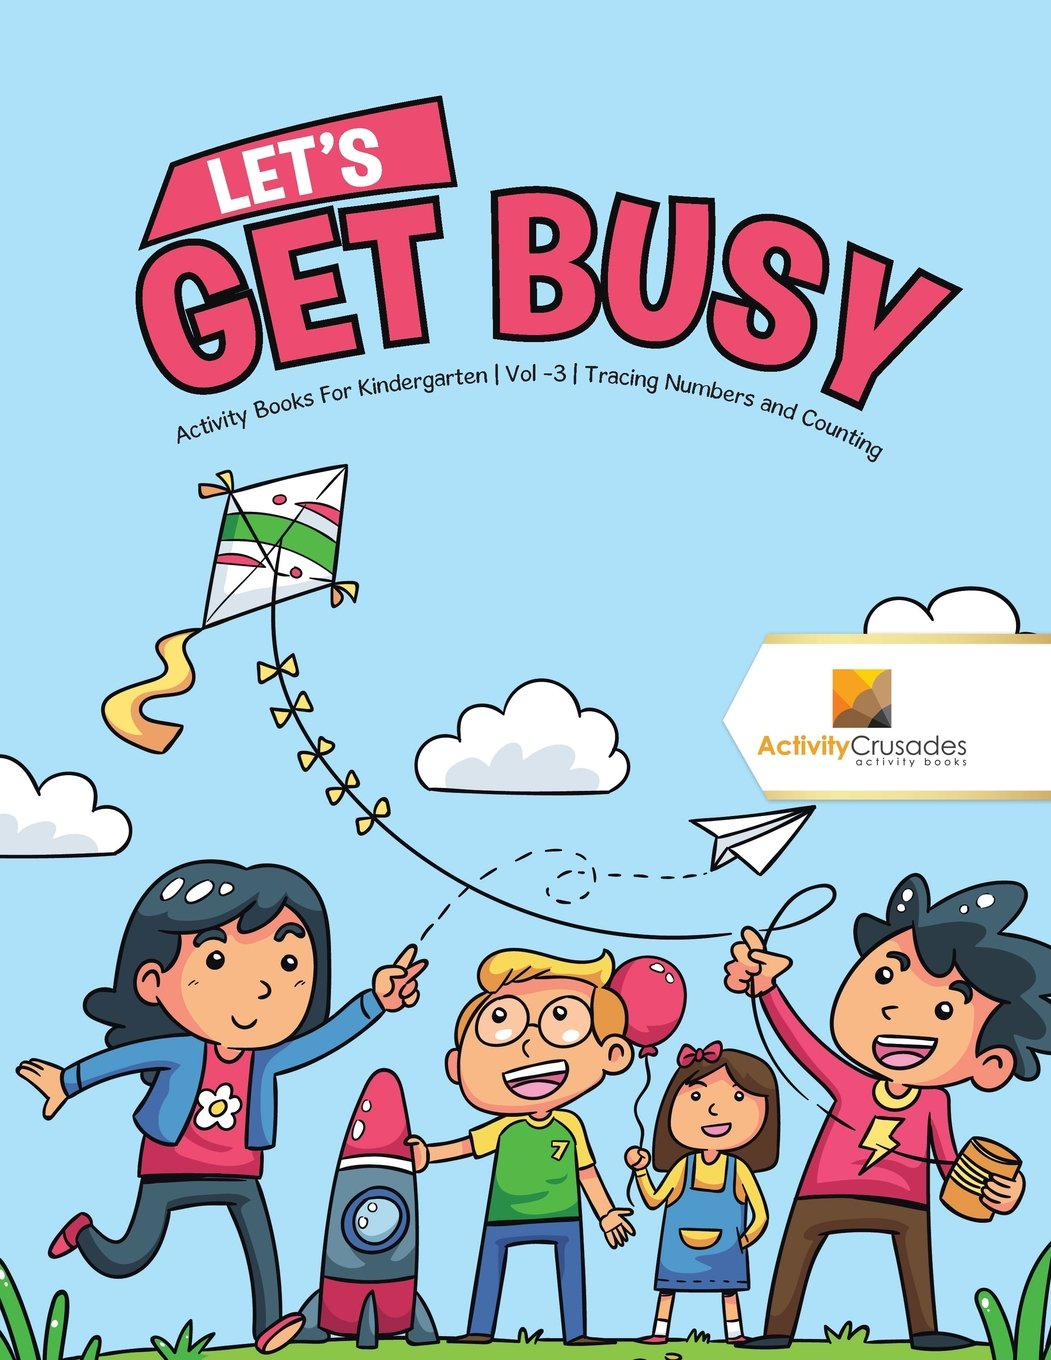 Download Let's Get Busy : Activity Books For Kindergarten  Vol -3  Tracing Numbers and Counting ebook